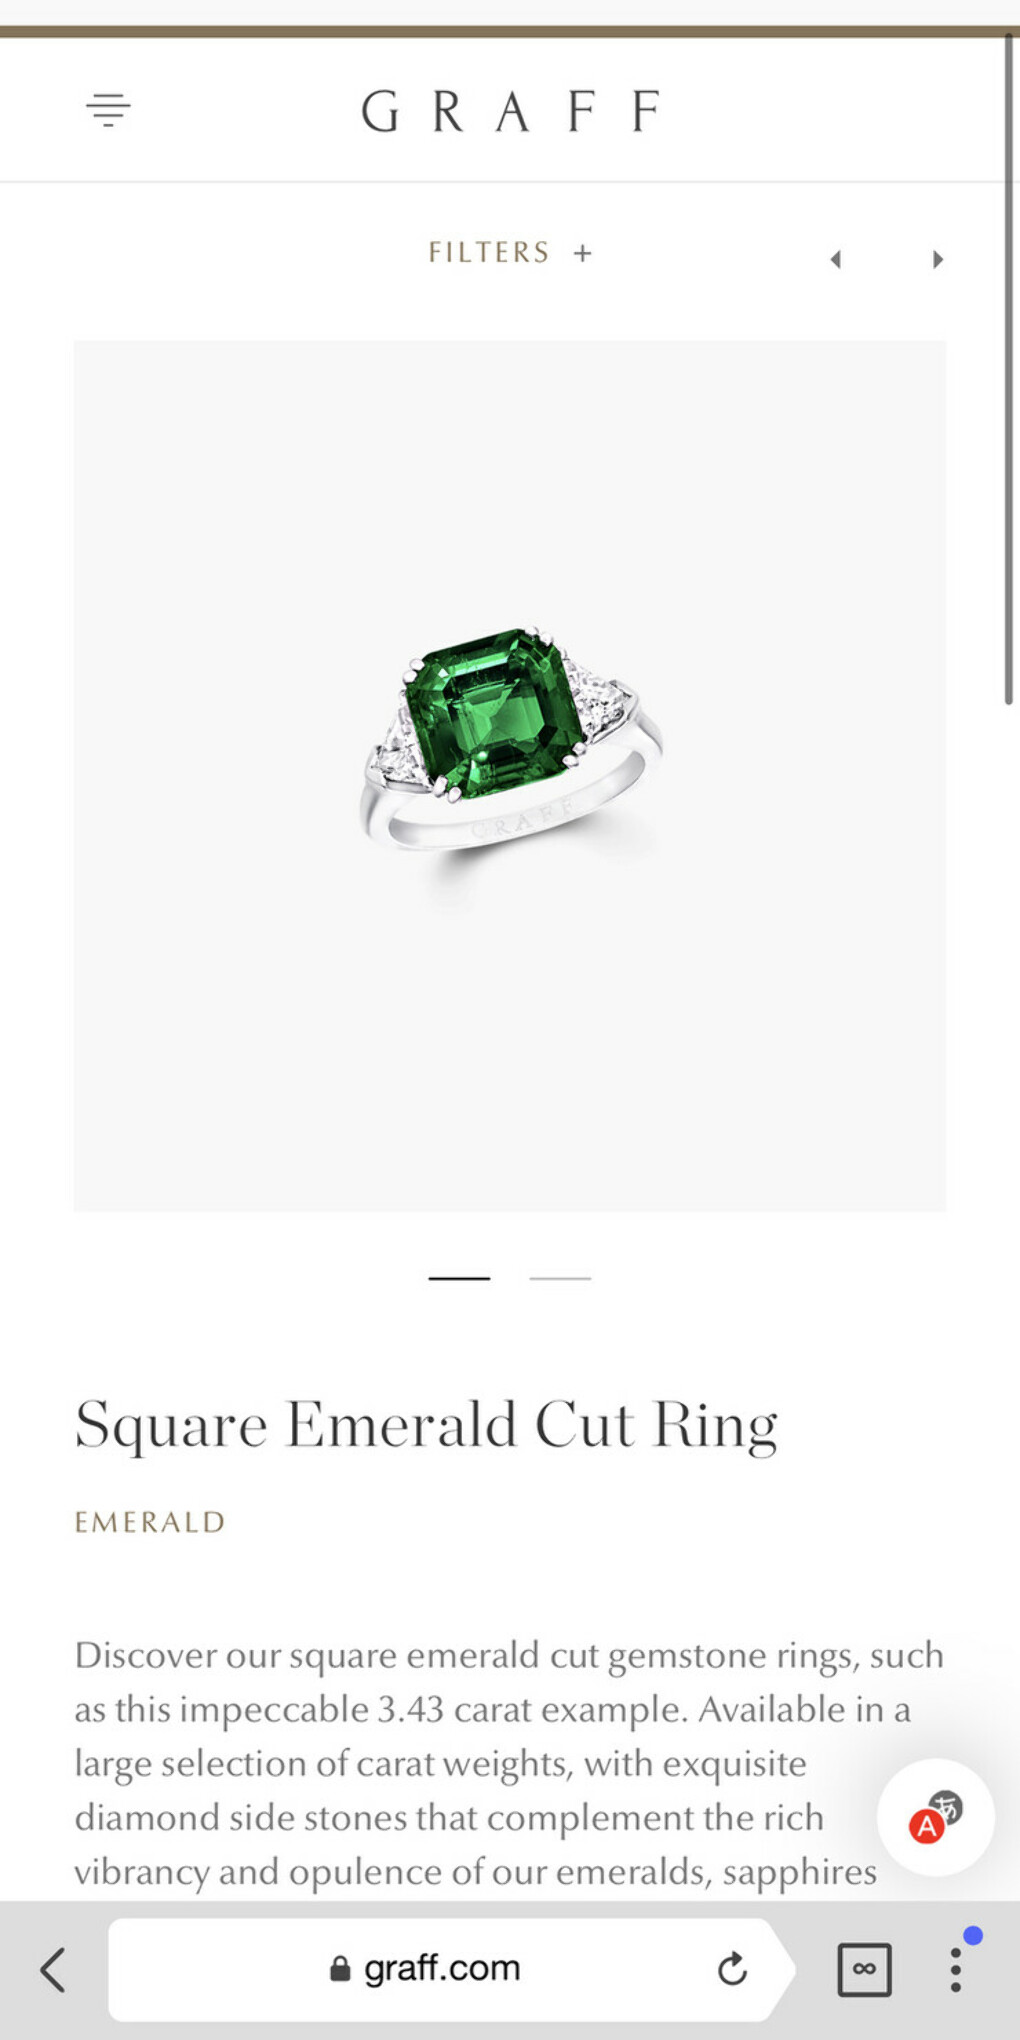 Square Emerald Cut Emerald Ring | Classic Graff | Graff